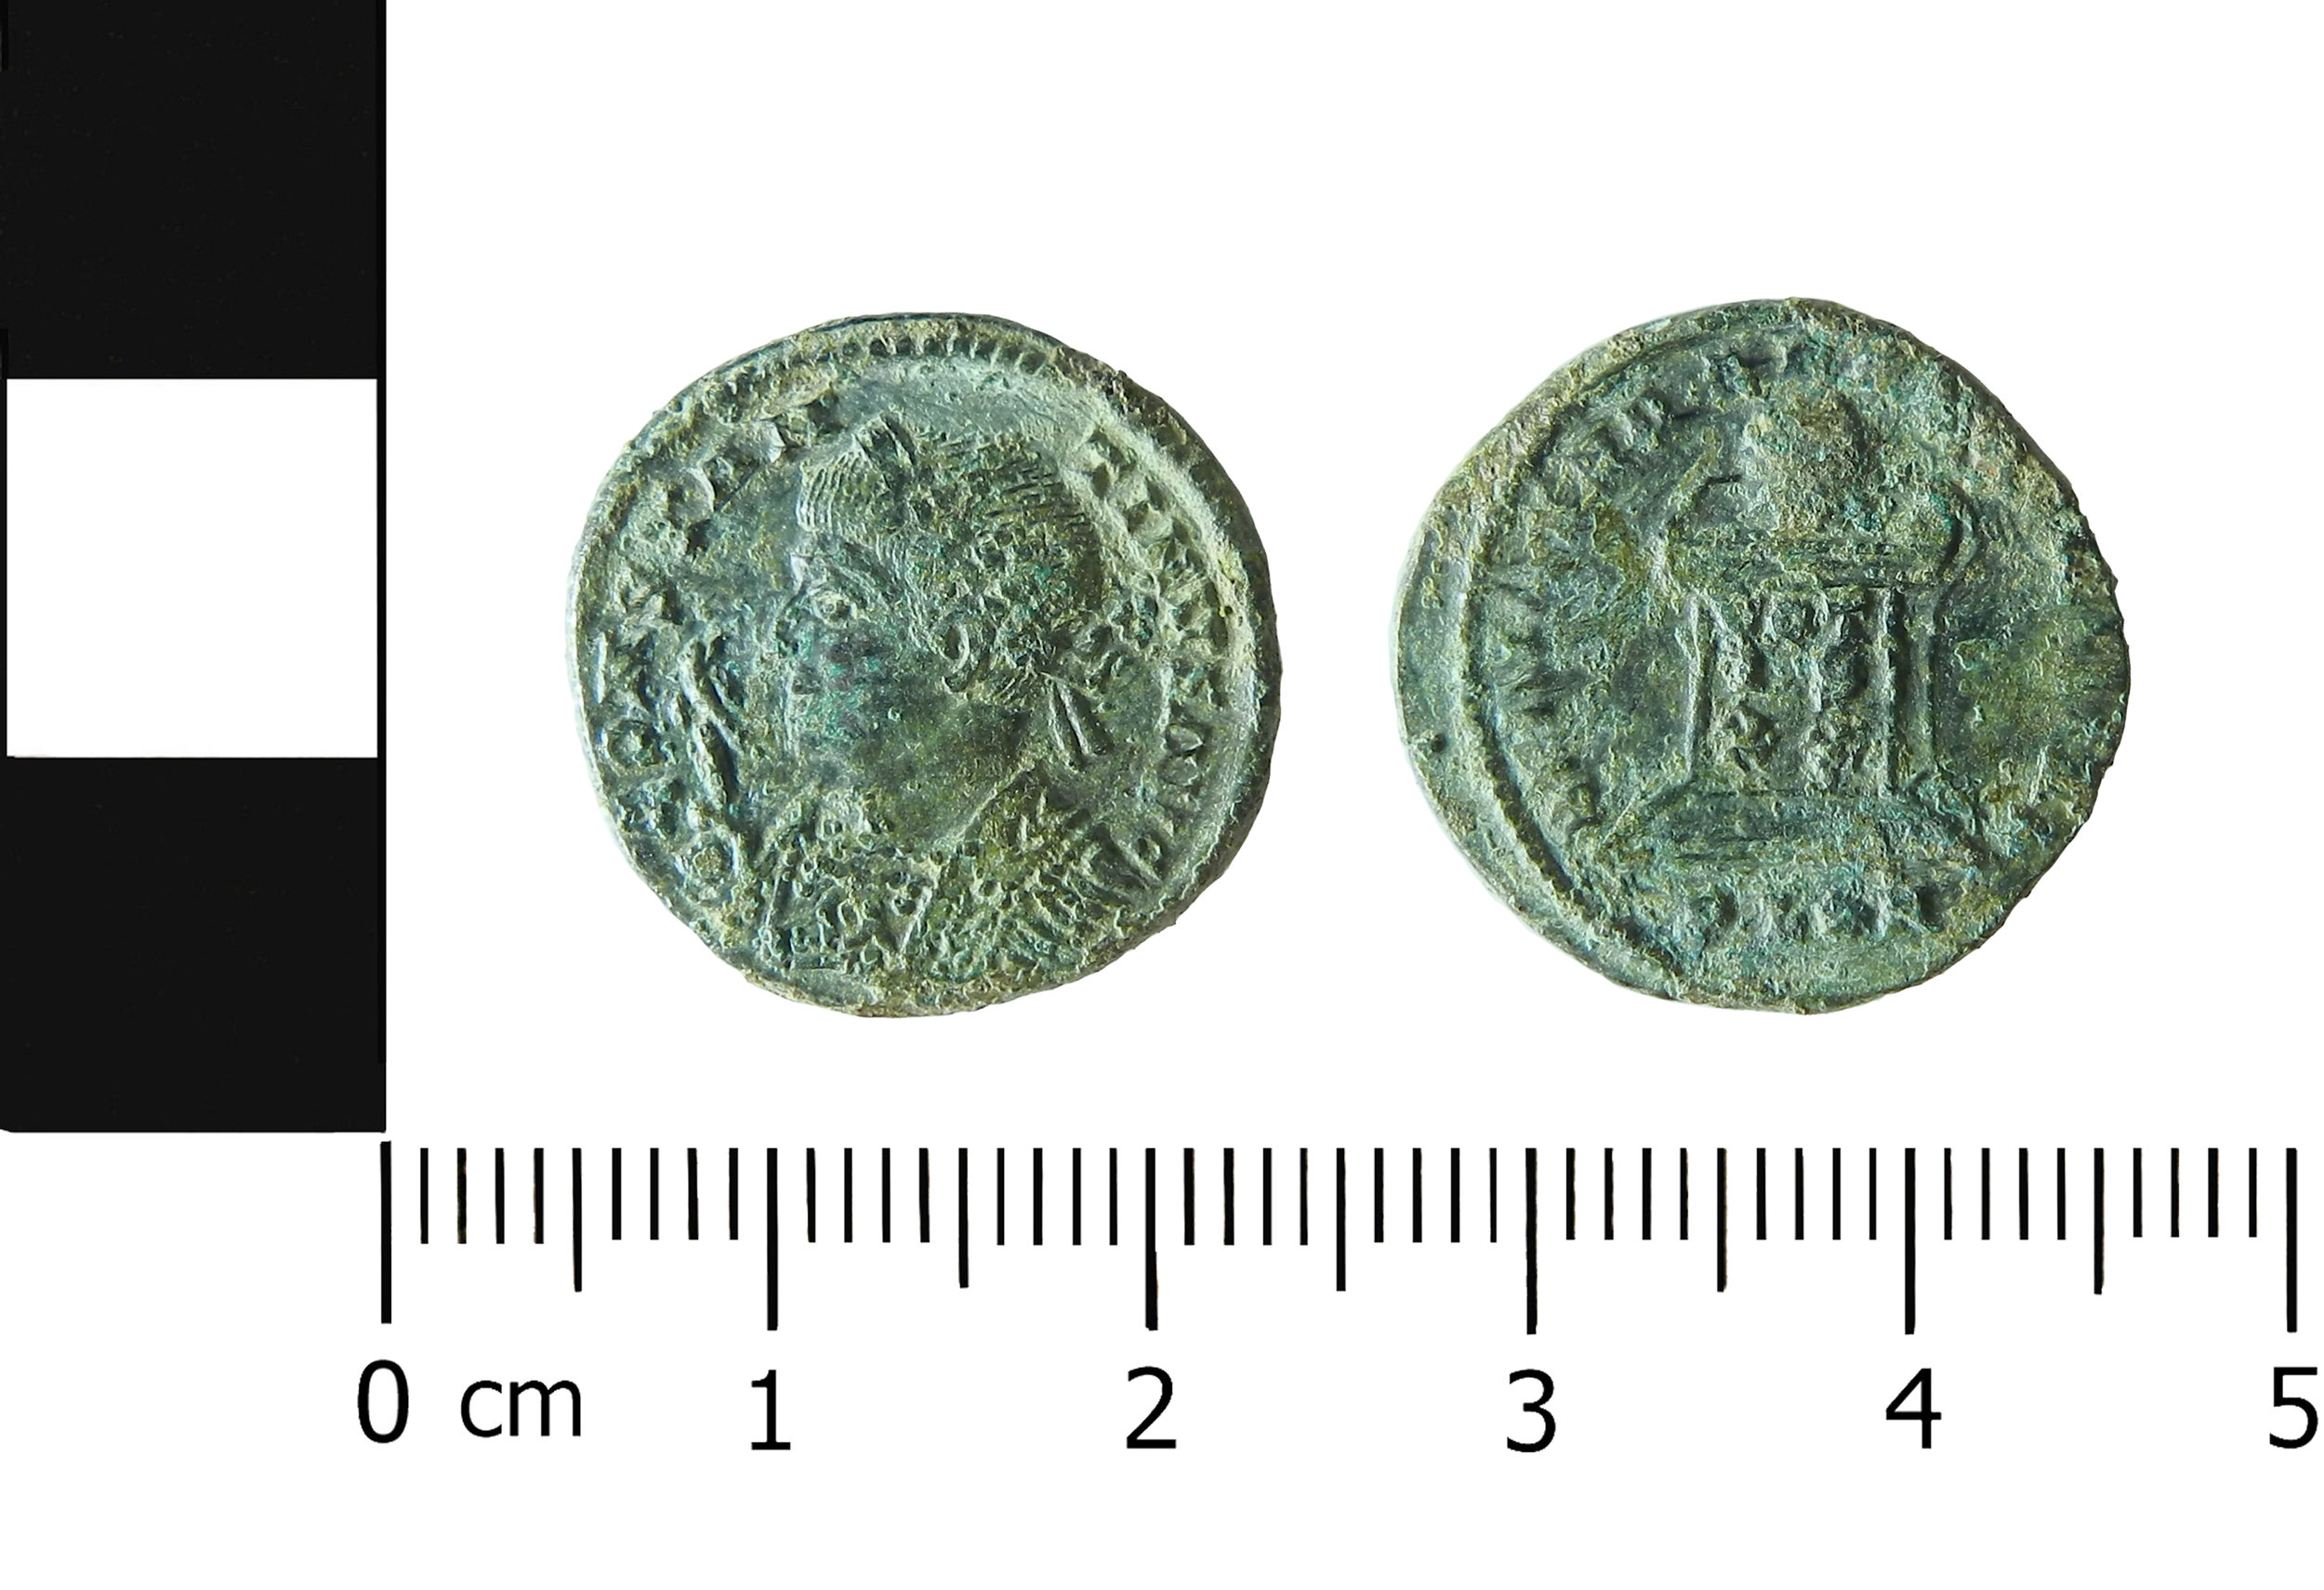 (MOL.208.75.31 Obverse: Constantine I, Reverse: Altar, Minted in London)